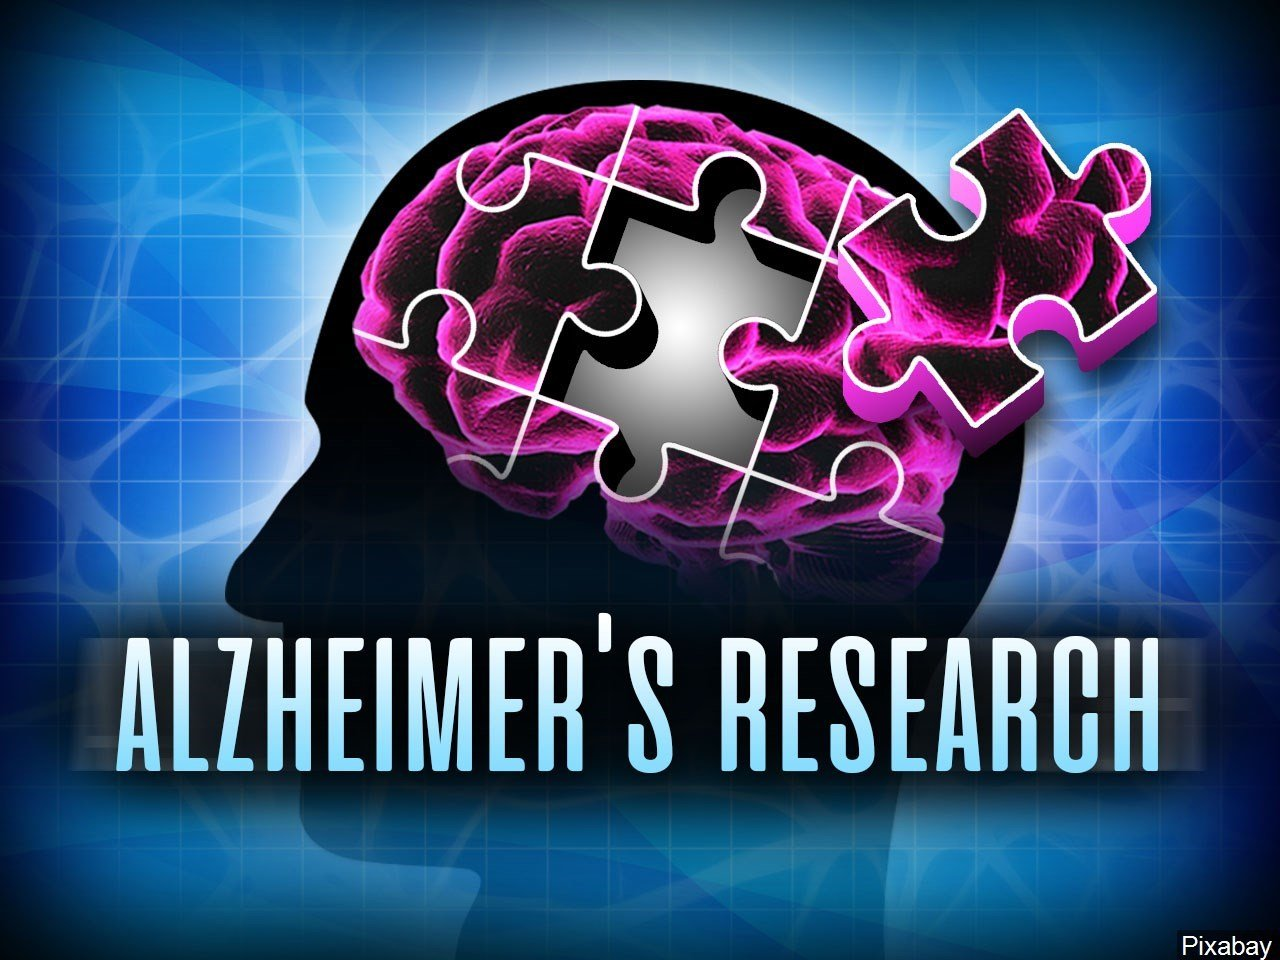 Can herpes virus cause Alzheimer's disease?